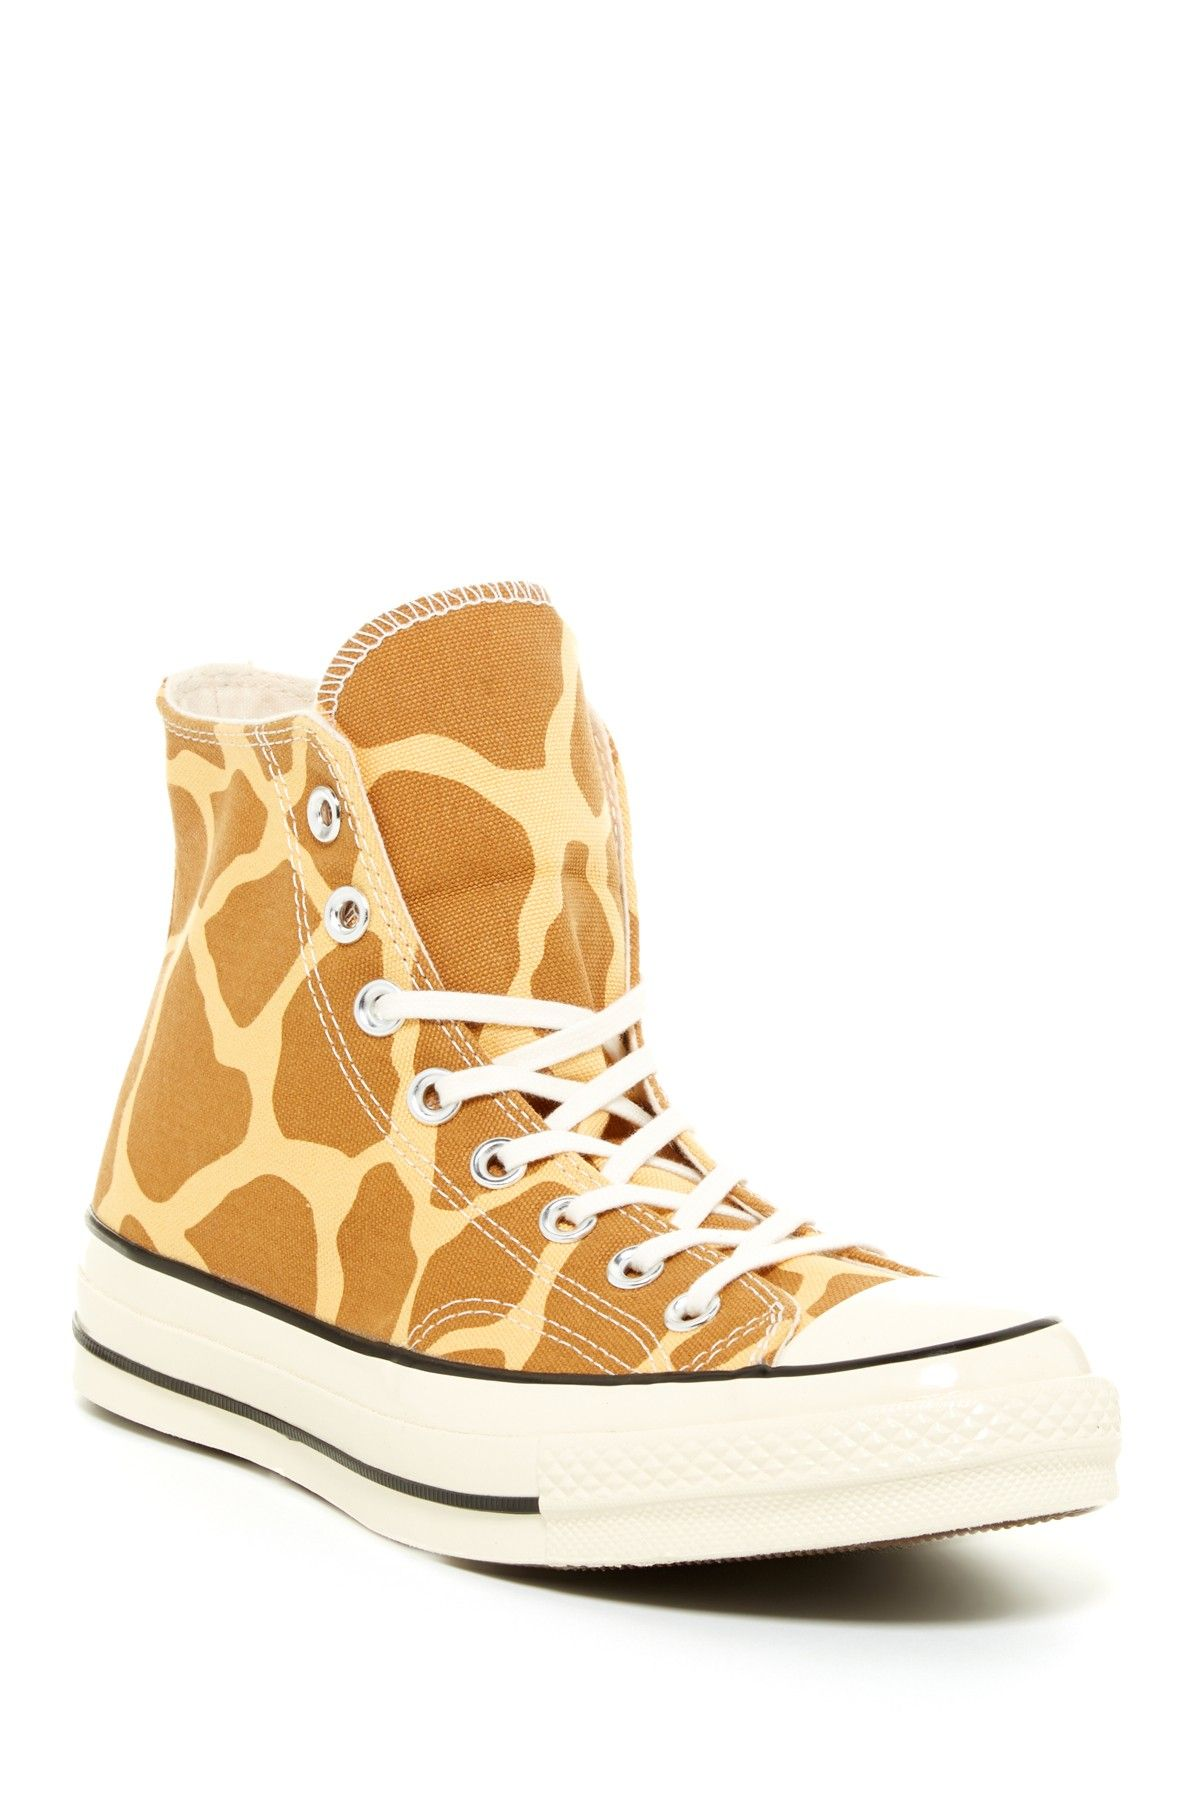 Cool Converse Giraffe Print High Top | Prints & Patterns